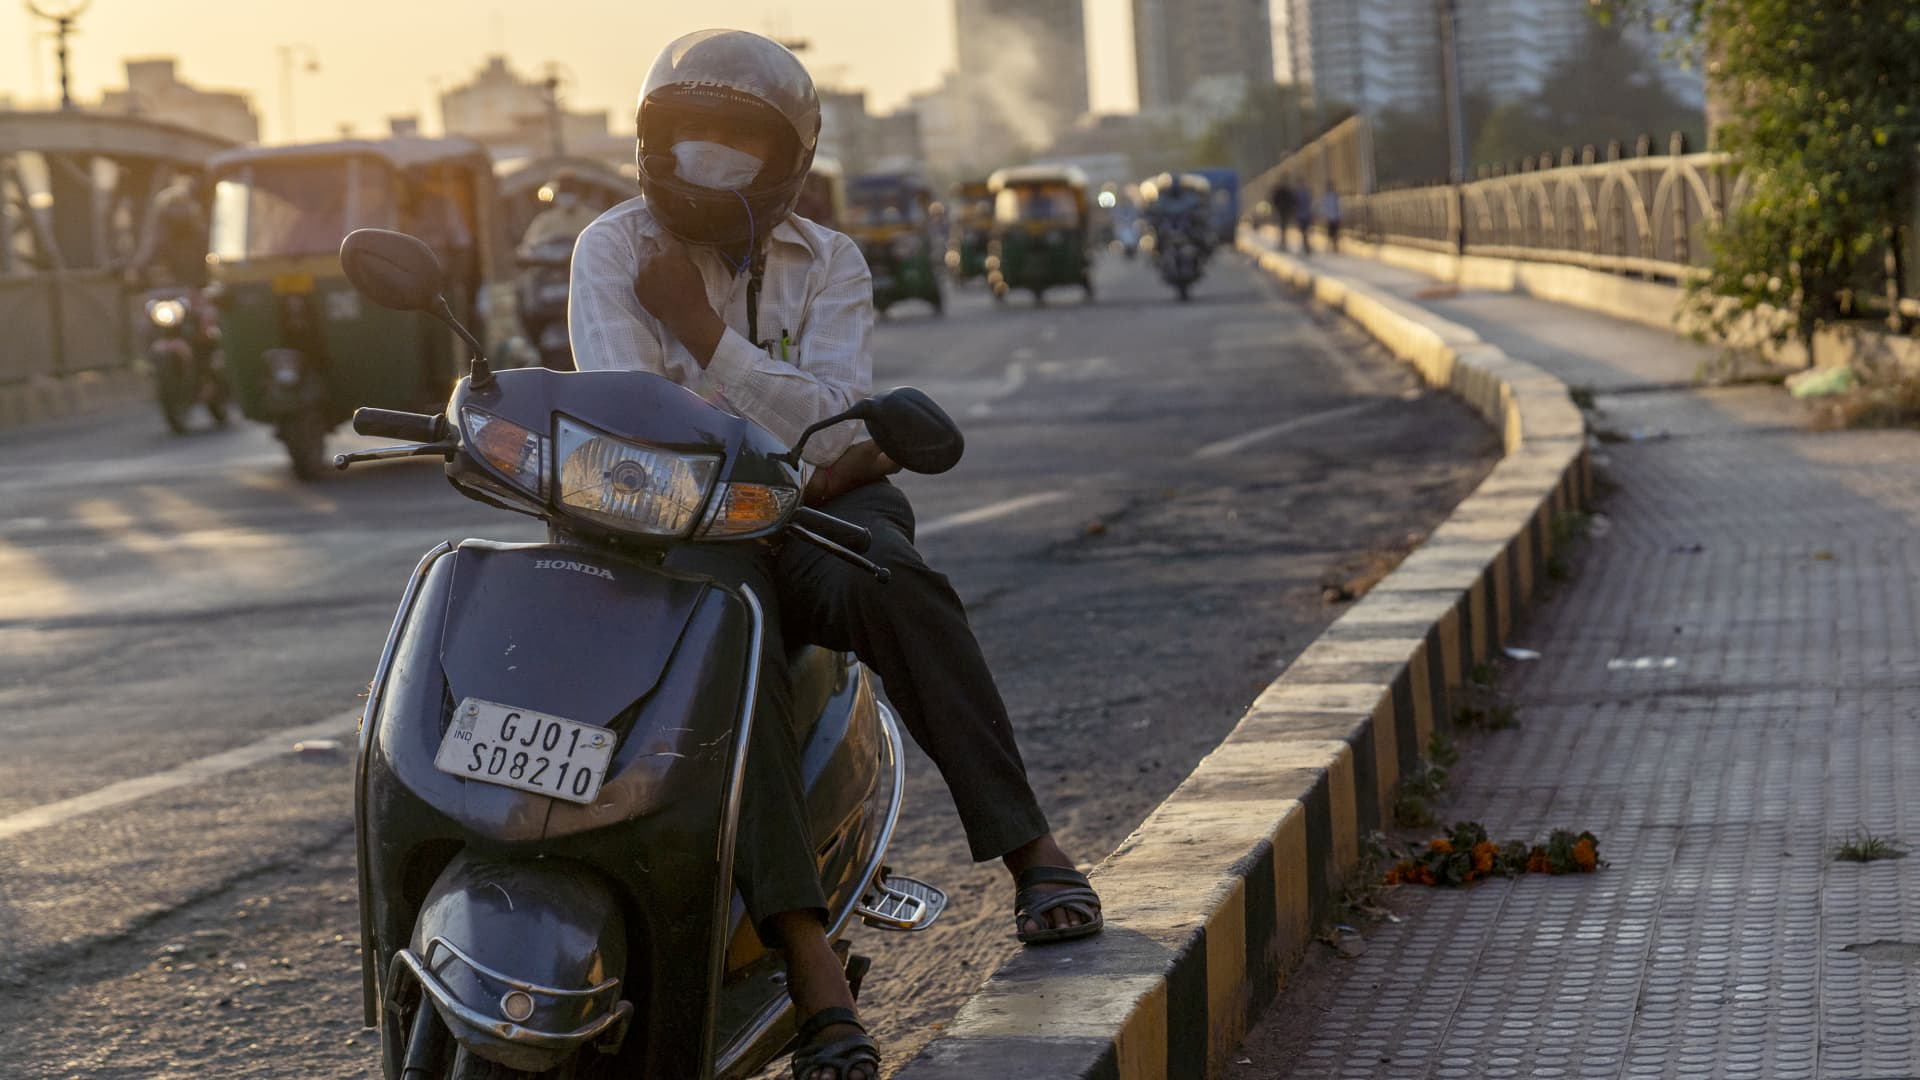 A motorcyclist wears a protective mask while sitting at the side of the road at the Sabarmati Riverfront in Ahmedabad, India, on Thursday, Oct. 22, 2020. Prime Minister Narendra Modi said his government will ensure that all 1.3 billion people nationwide will have access to a Covid-19 vaccine as soon it is ready.